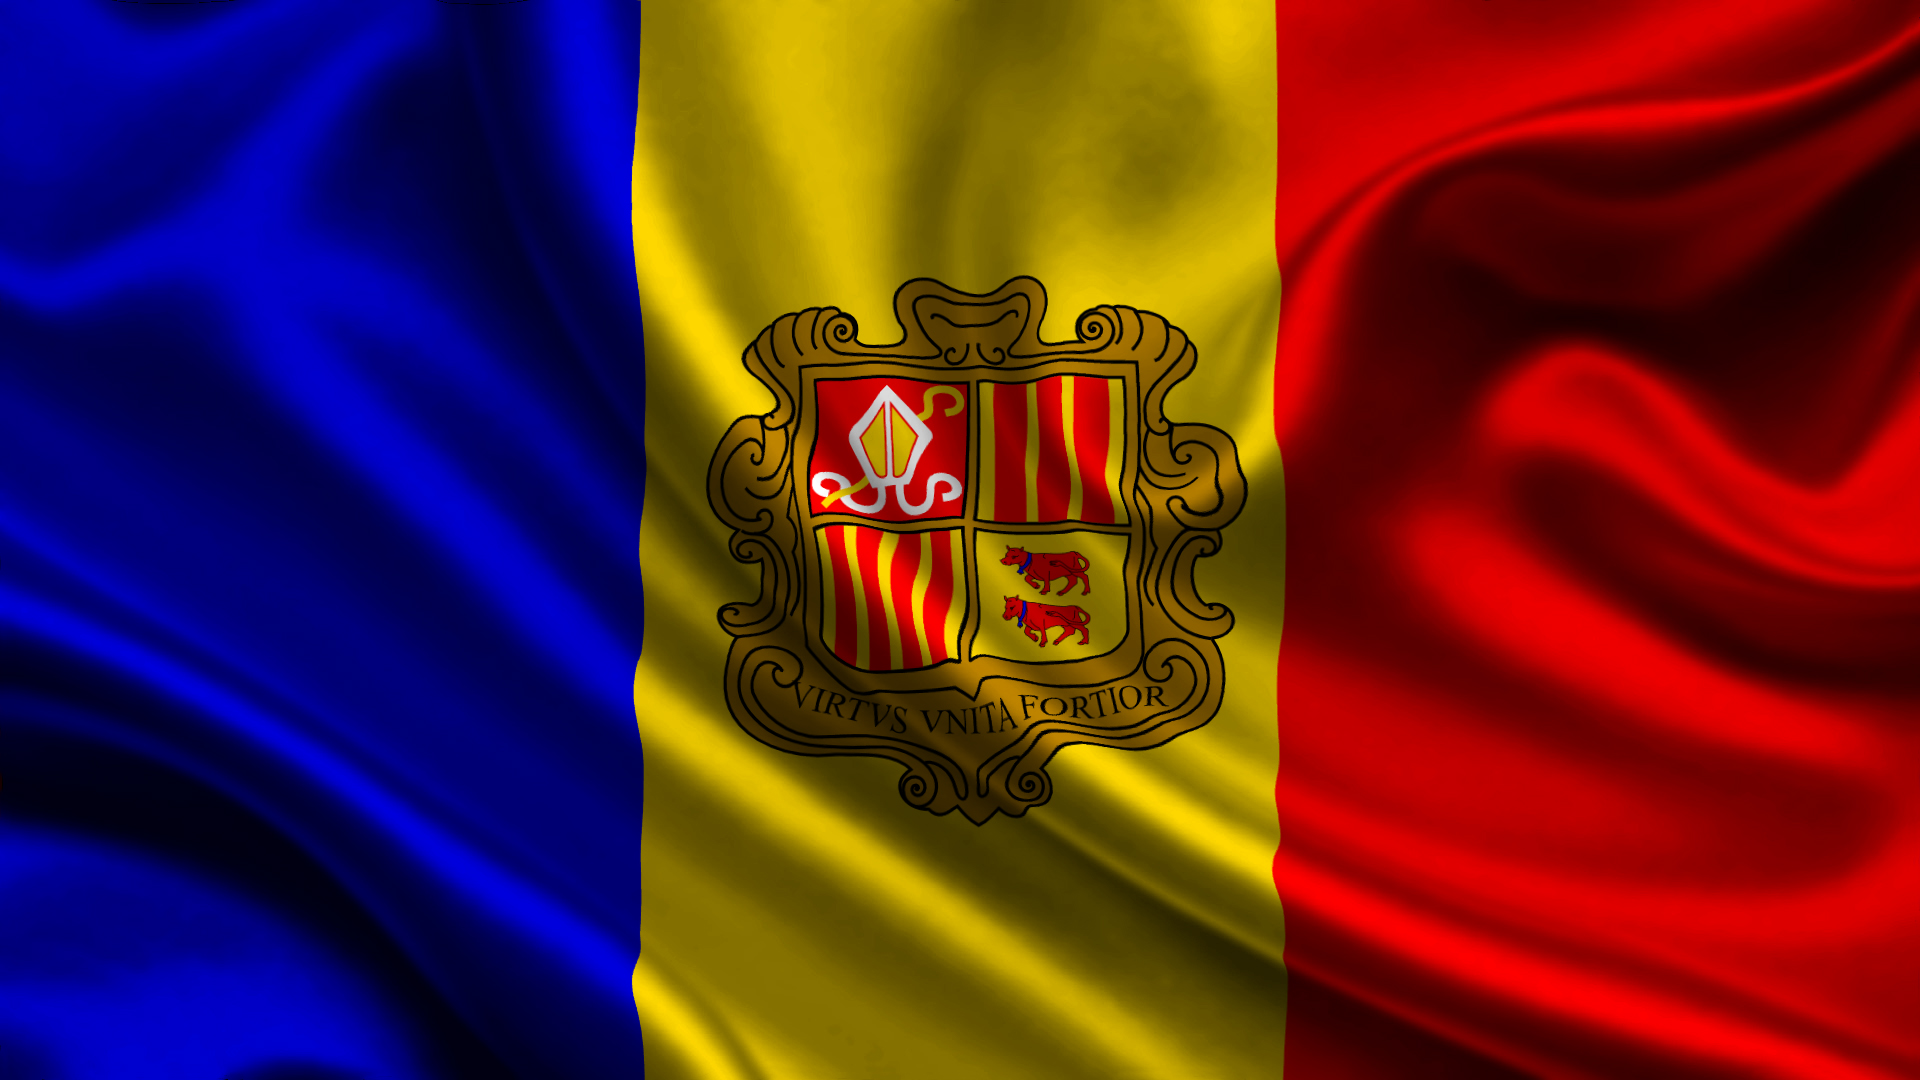 Andorran Flags (Andorra) from The World Flag Database